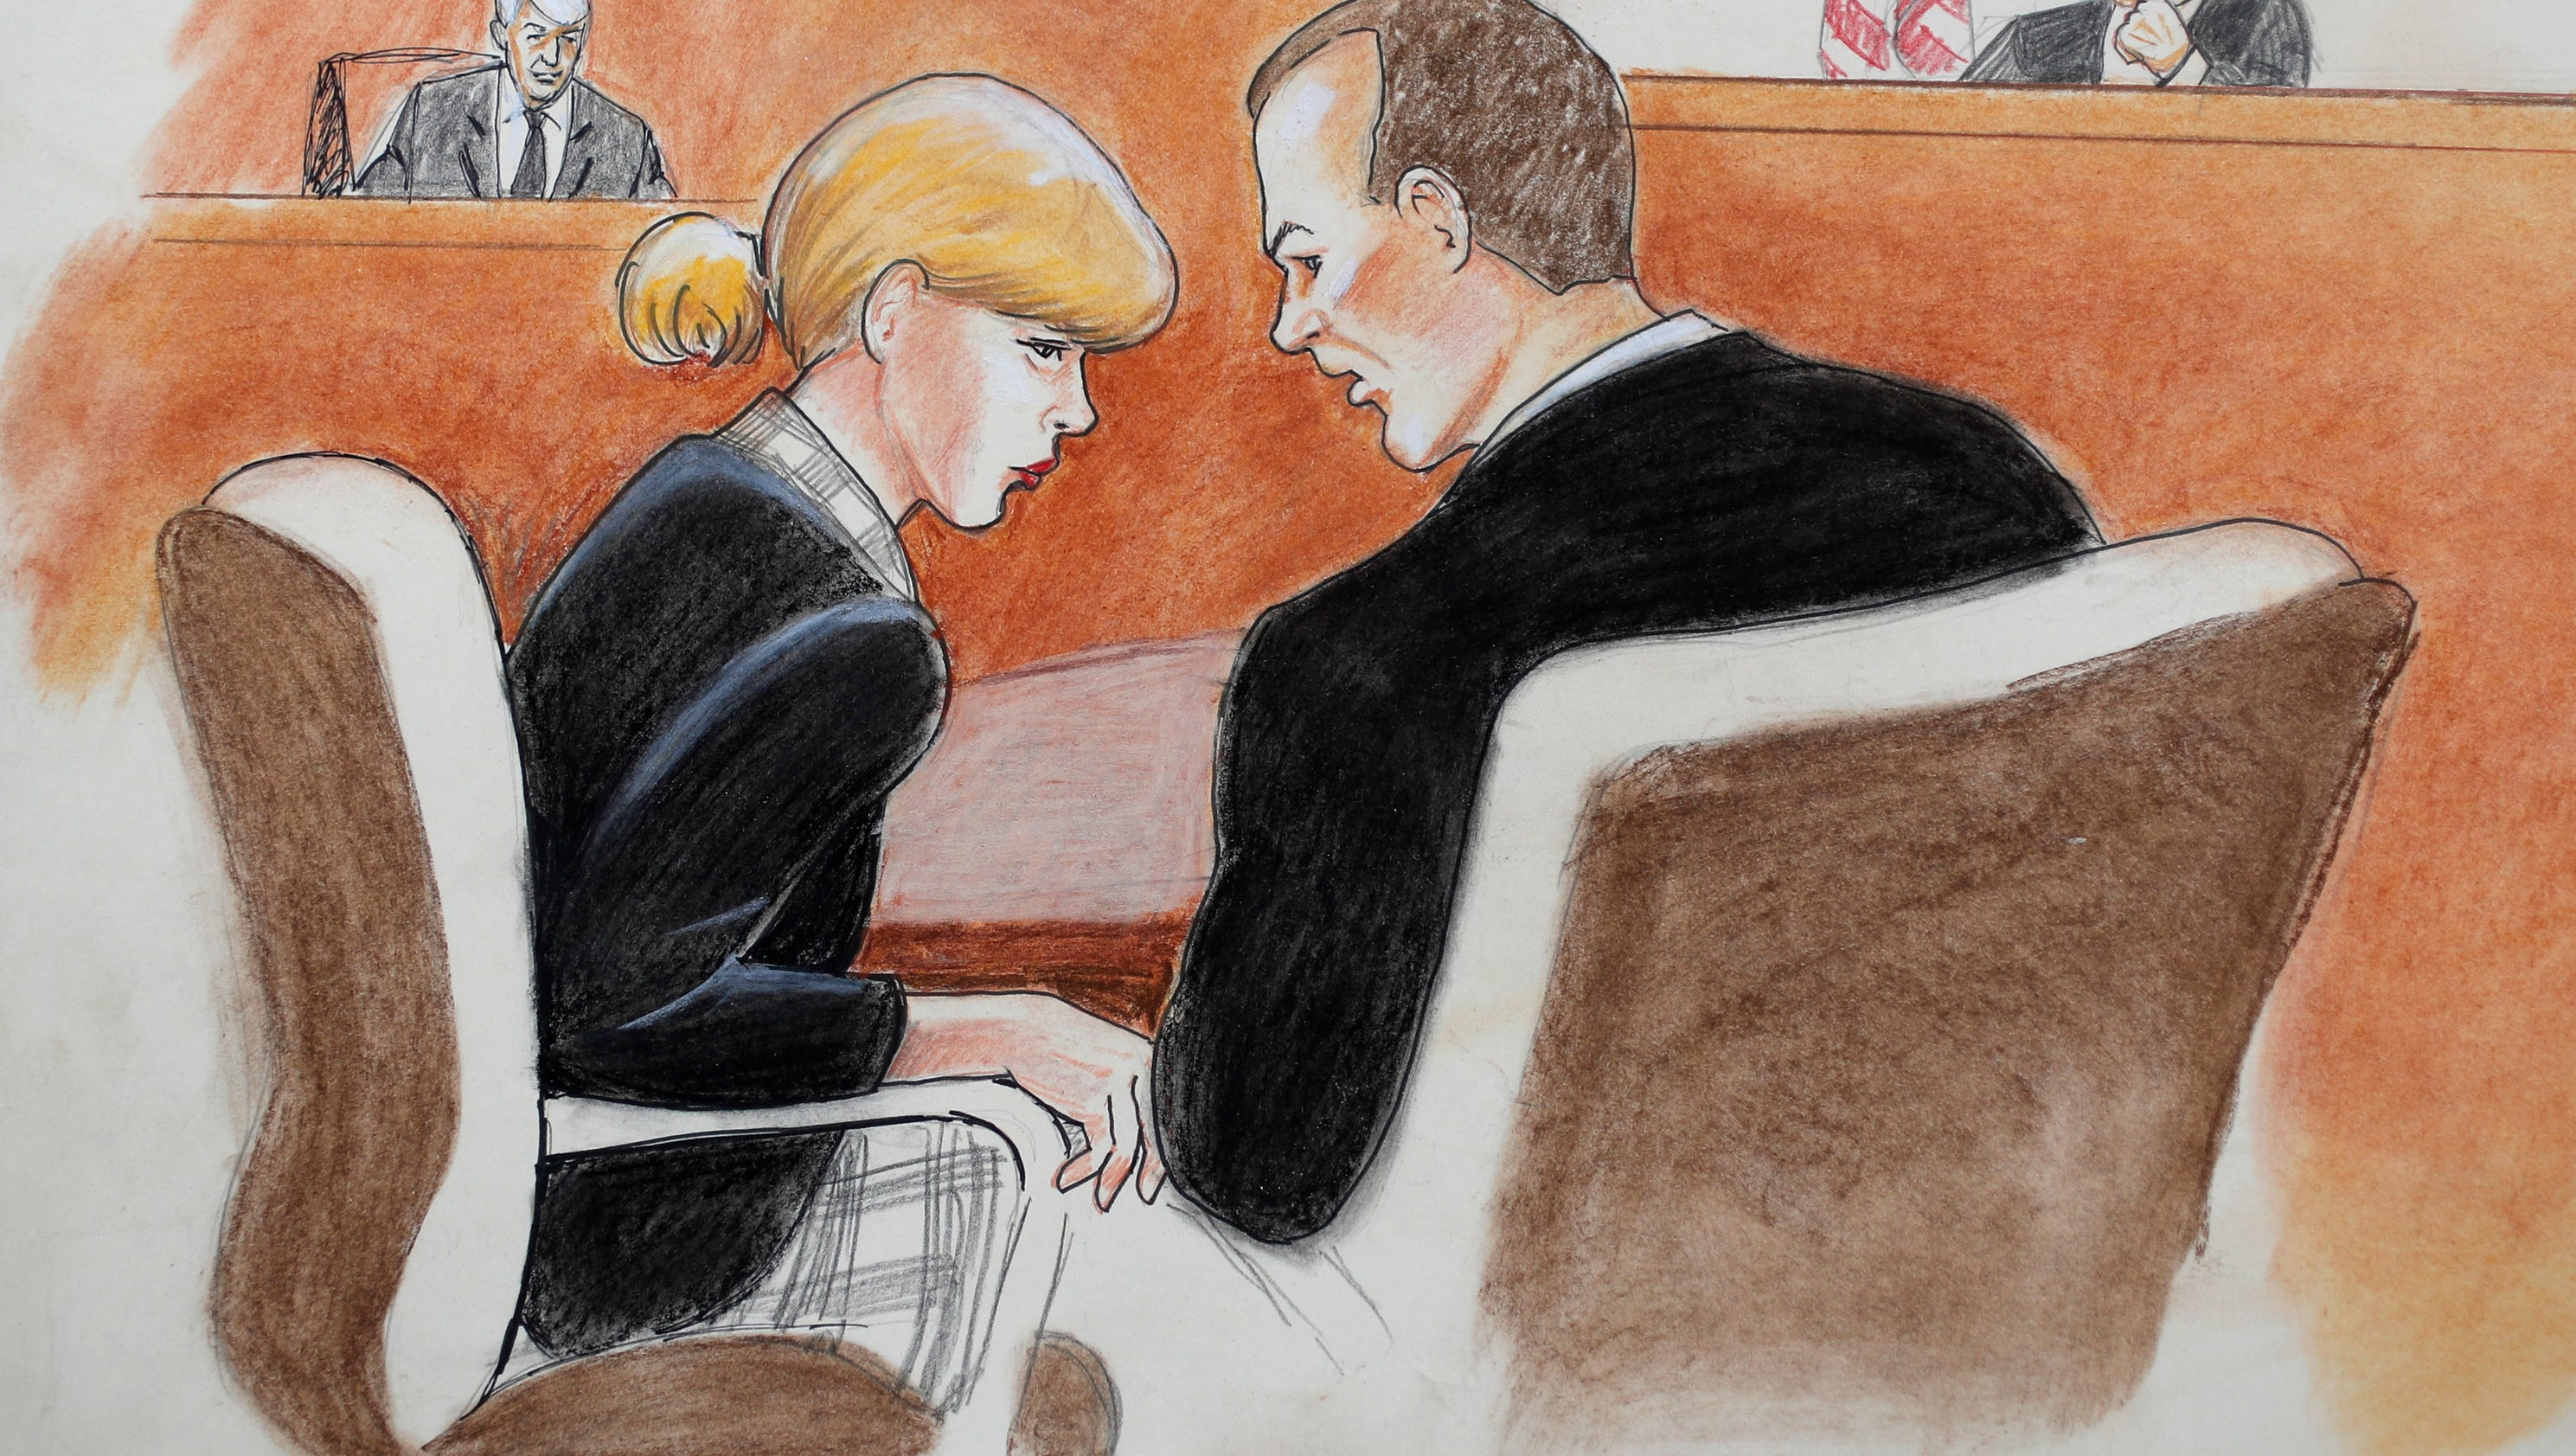 Taylor Swift groping trial: Her mom takes stand, says DJ 'sexually assaulted' Taylor